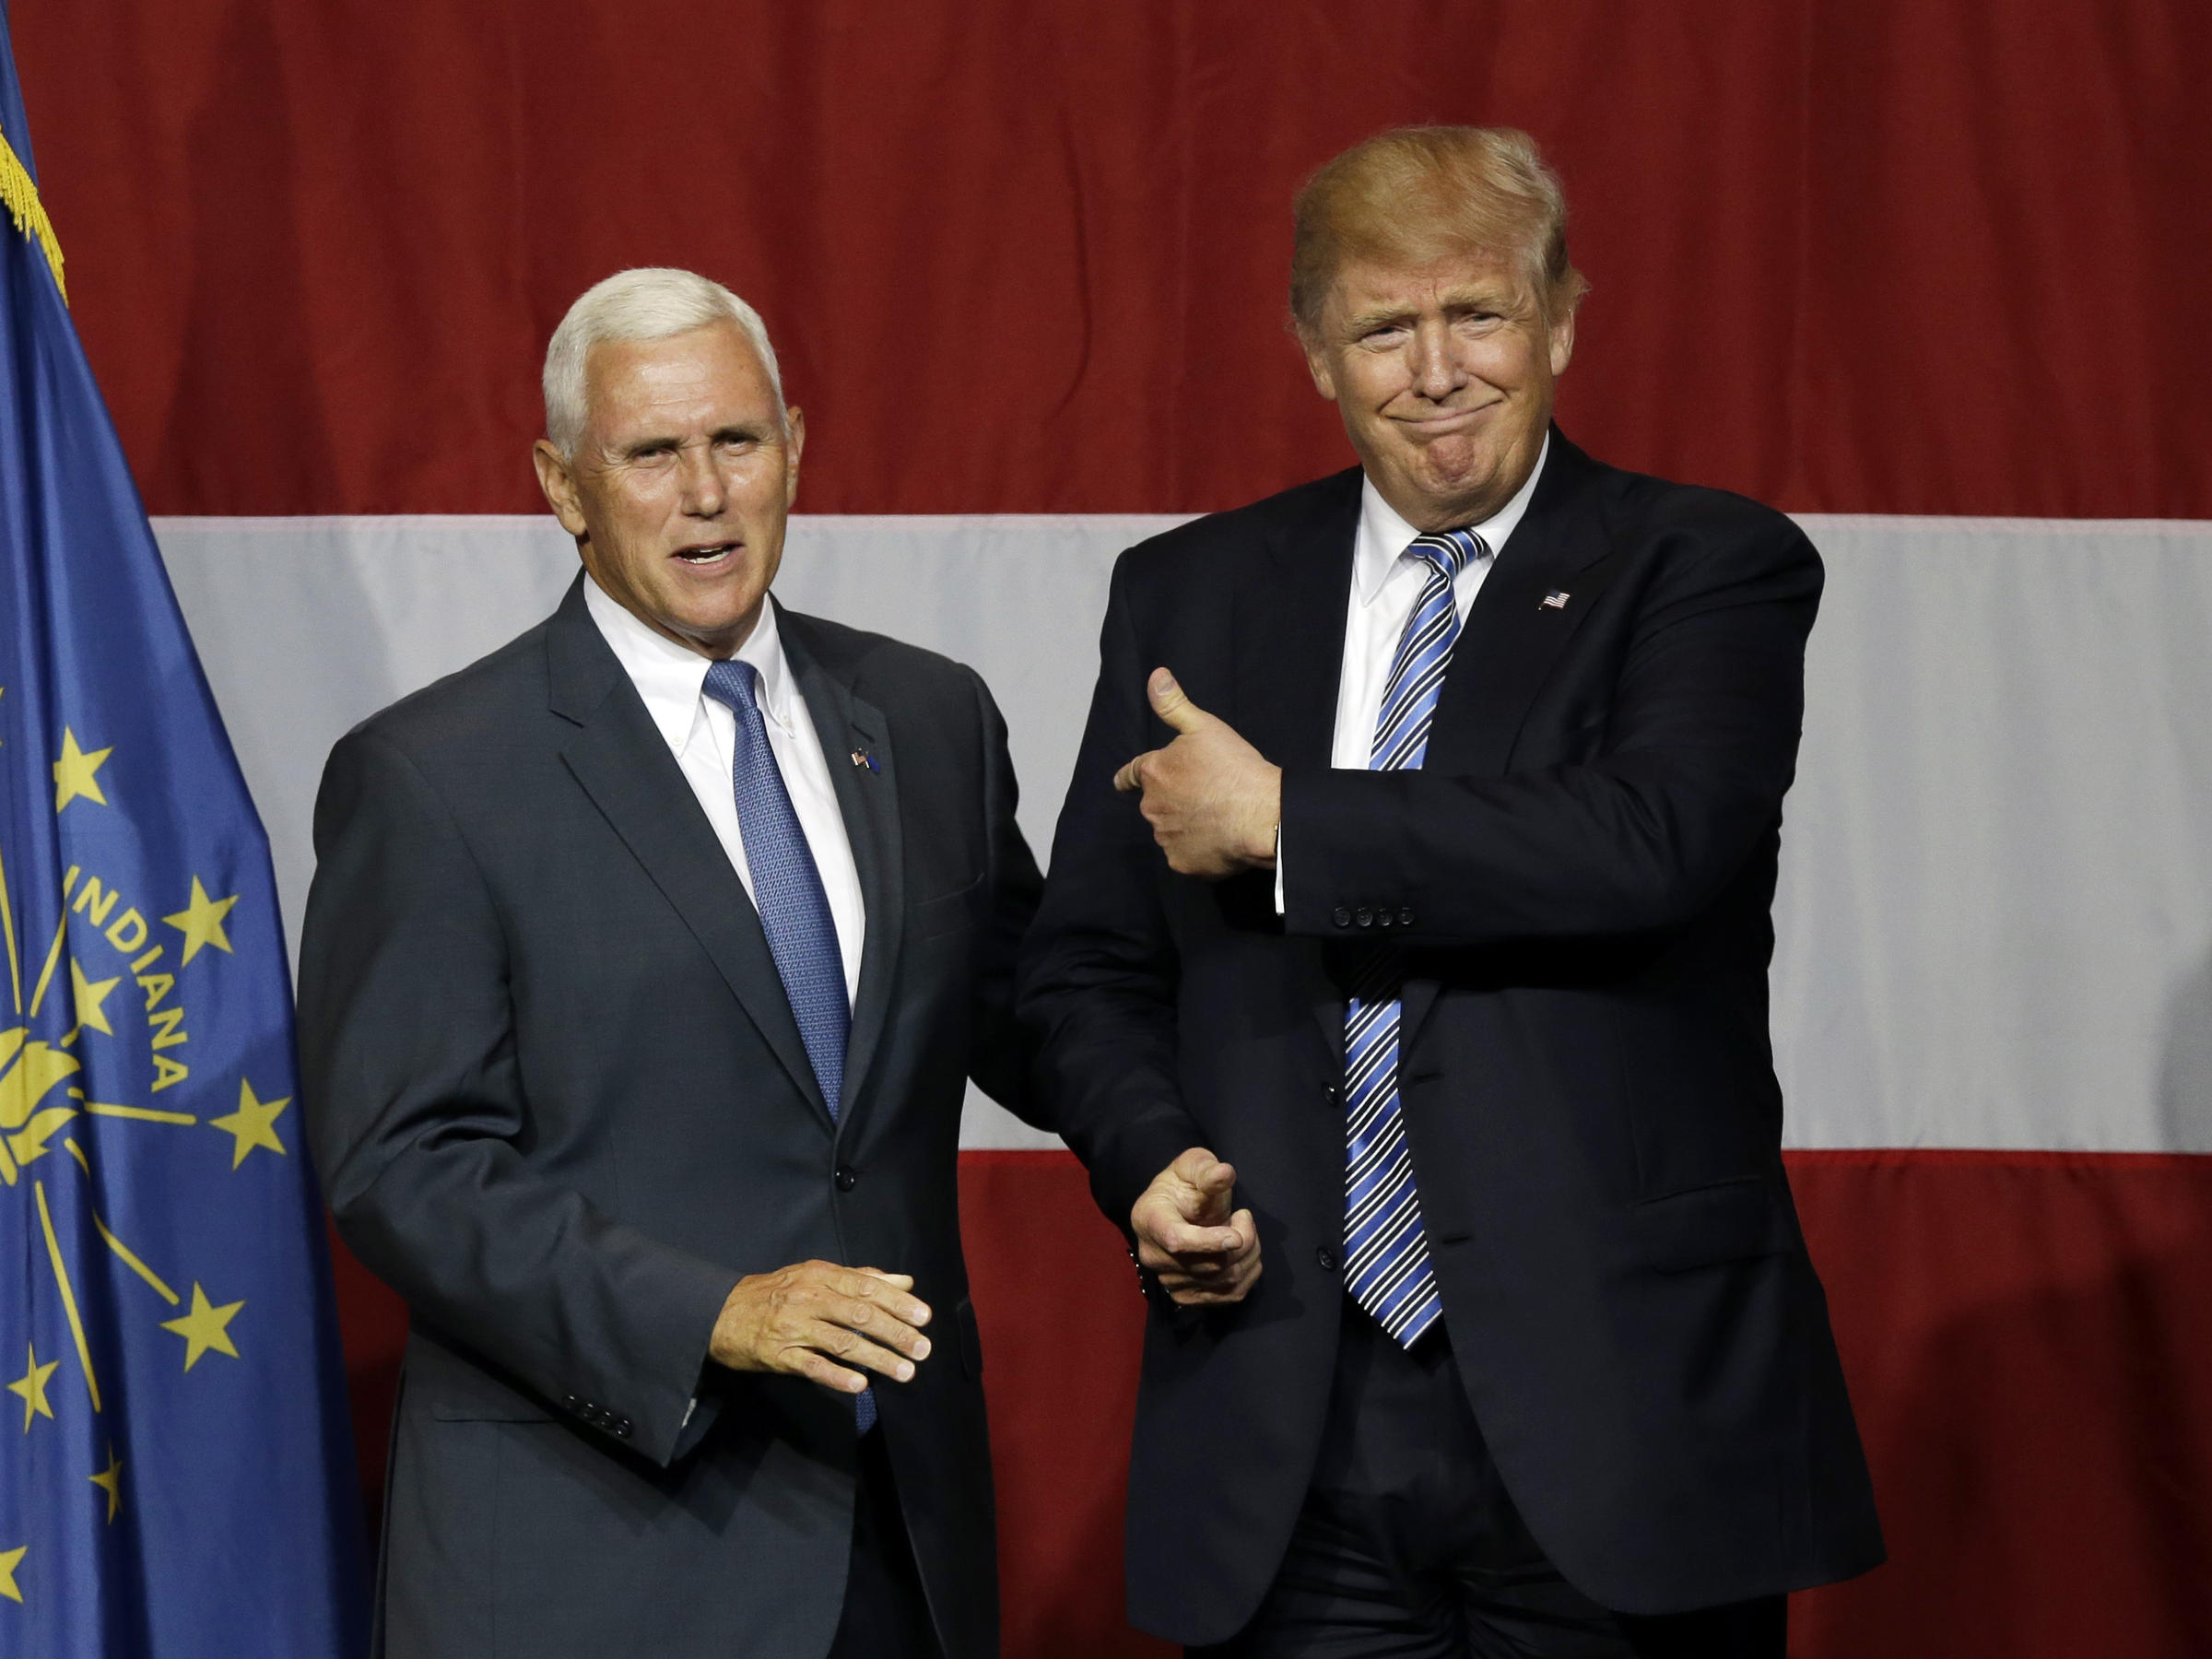 Trump, VP Pick Pence Appear Together for First Time